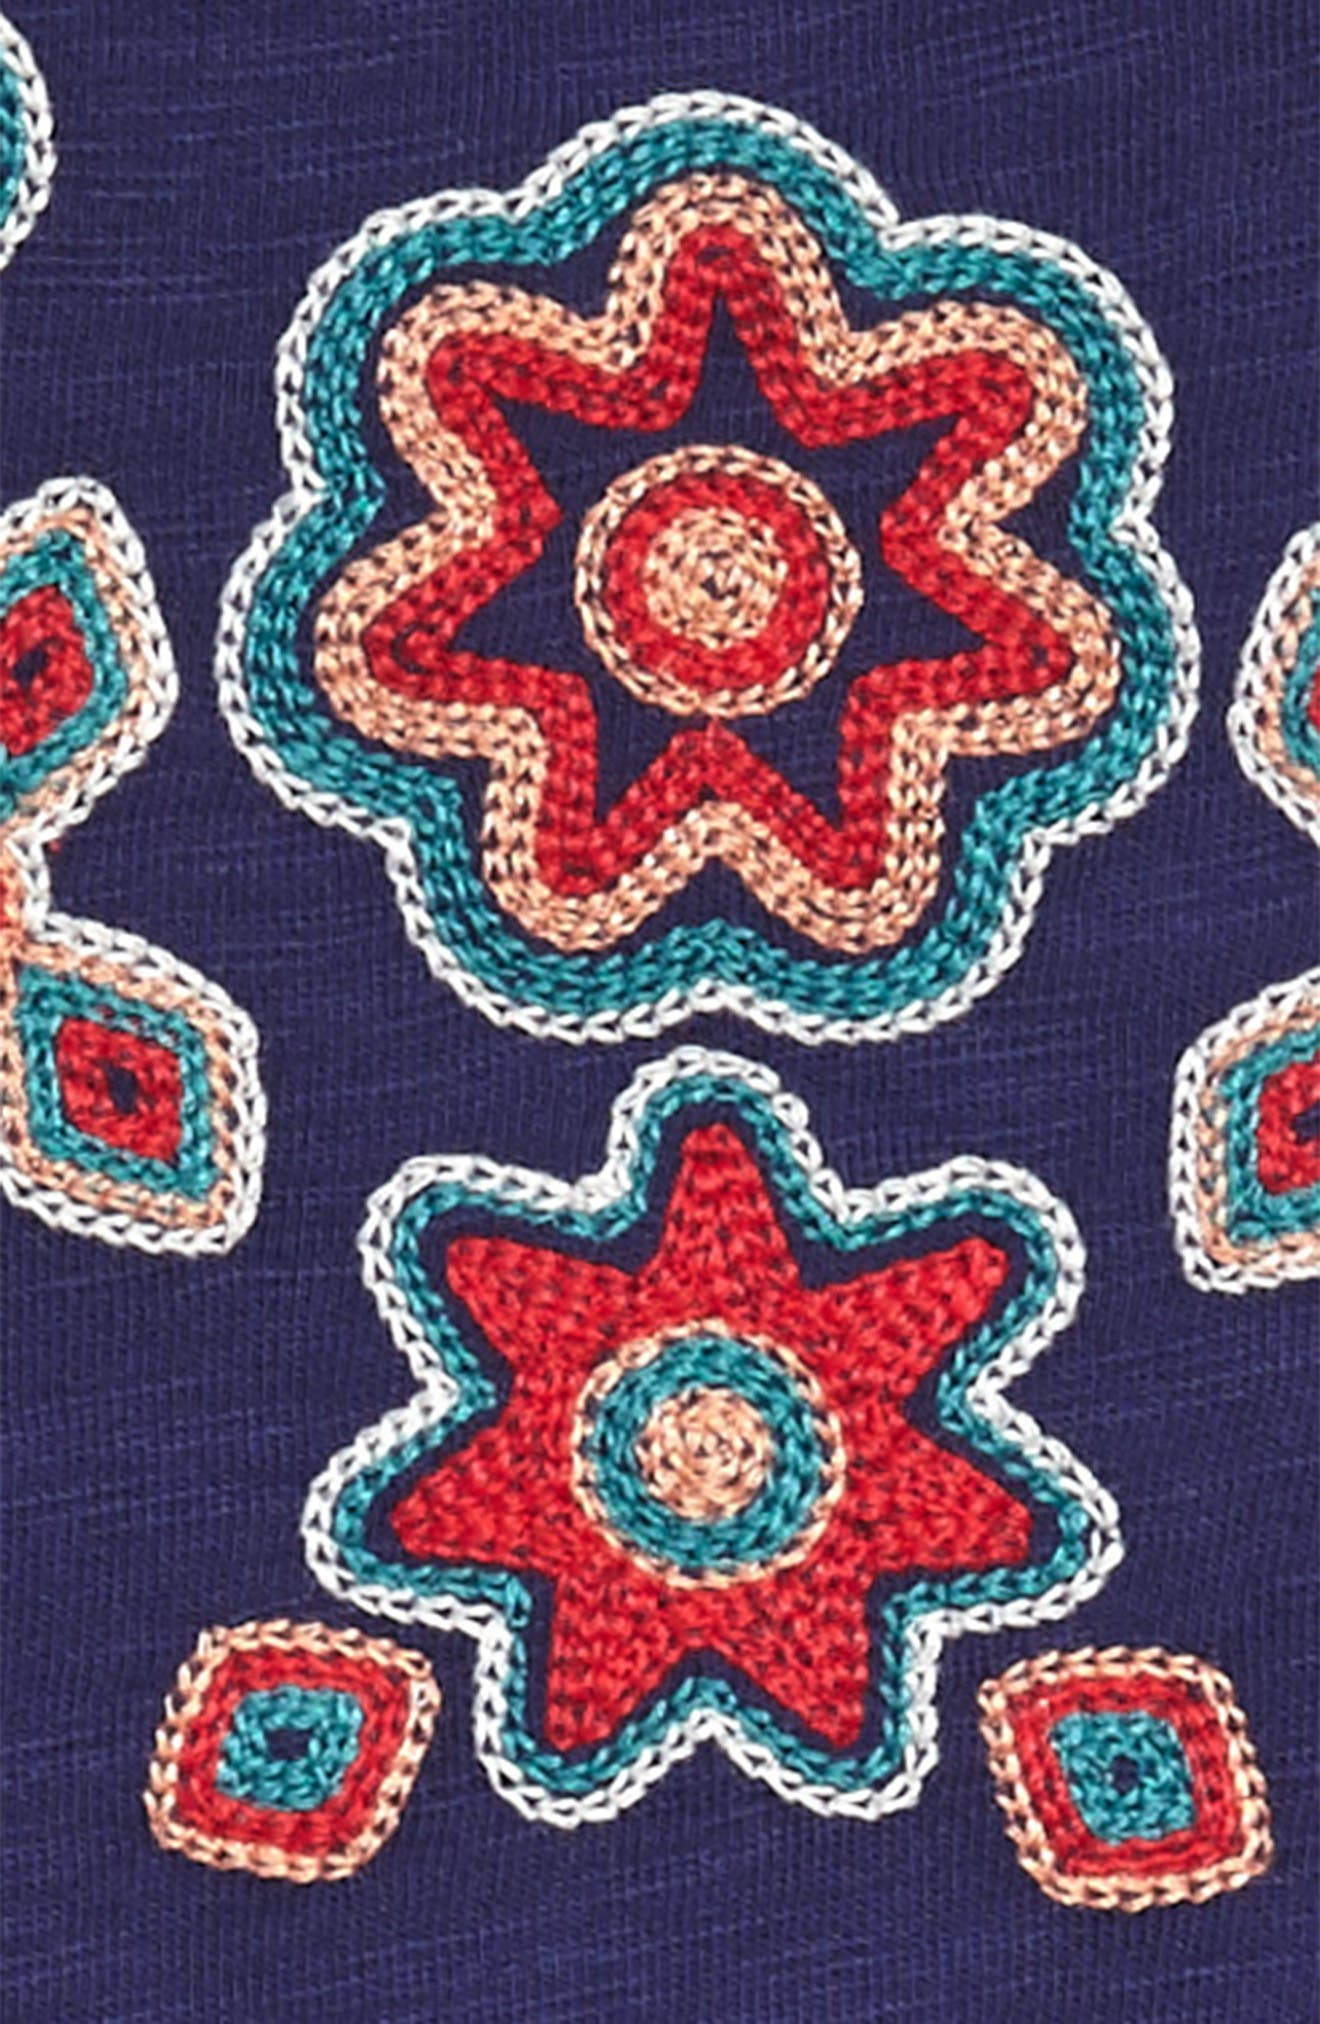 Berry Embroidered Dress,                             Alternate thumbnail 3, color,                             403